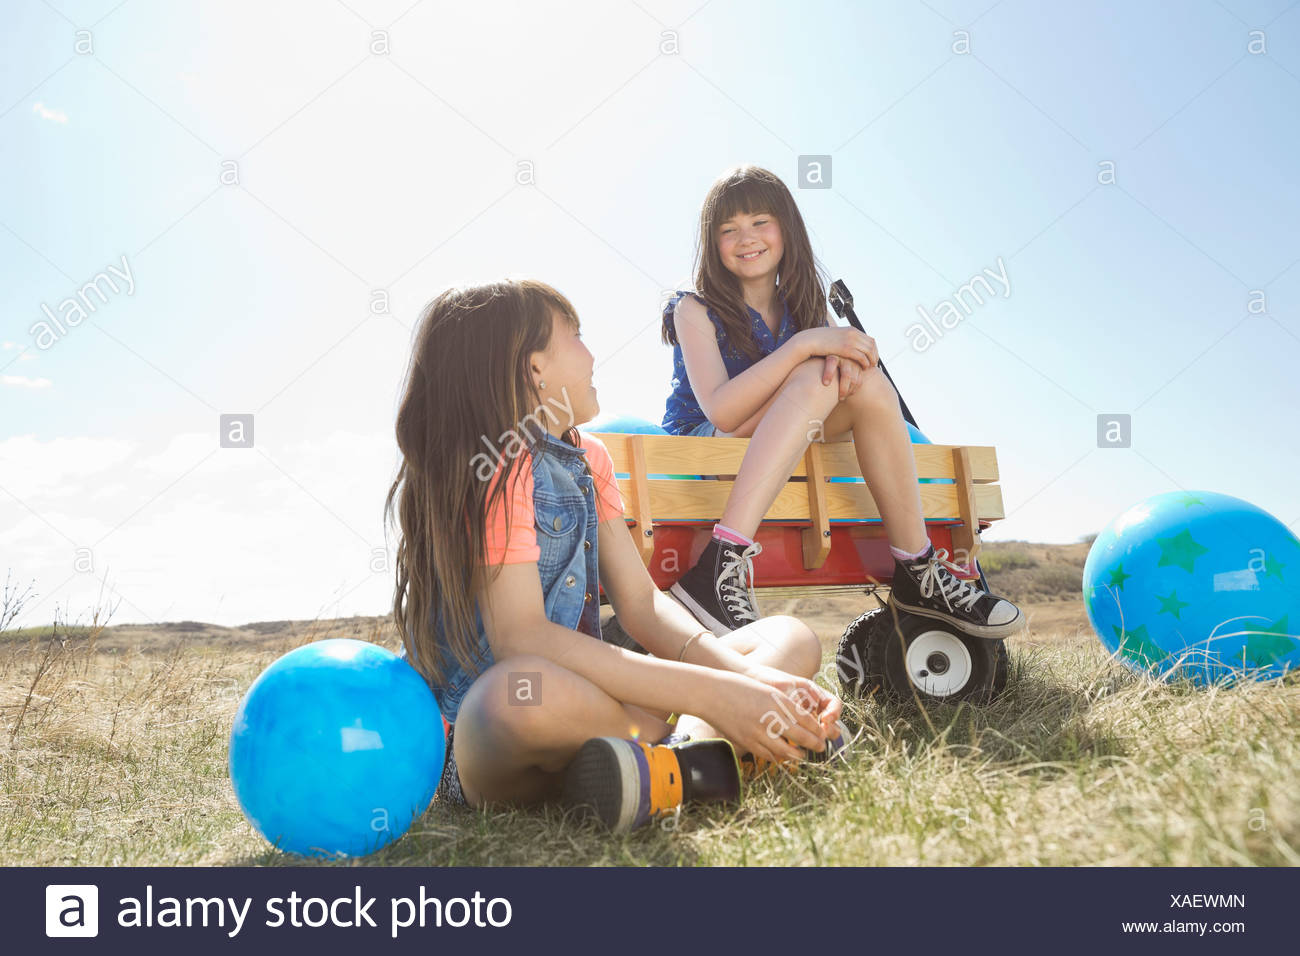 Smiling girls with balloons looking at each other - Stock Image